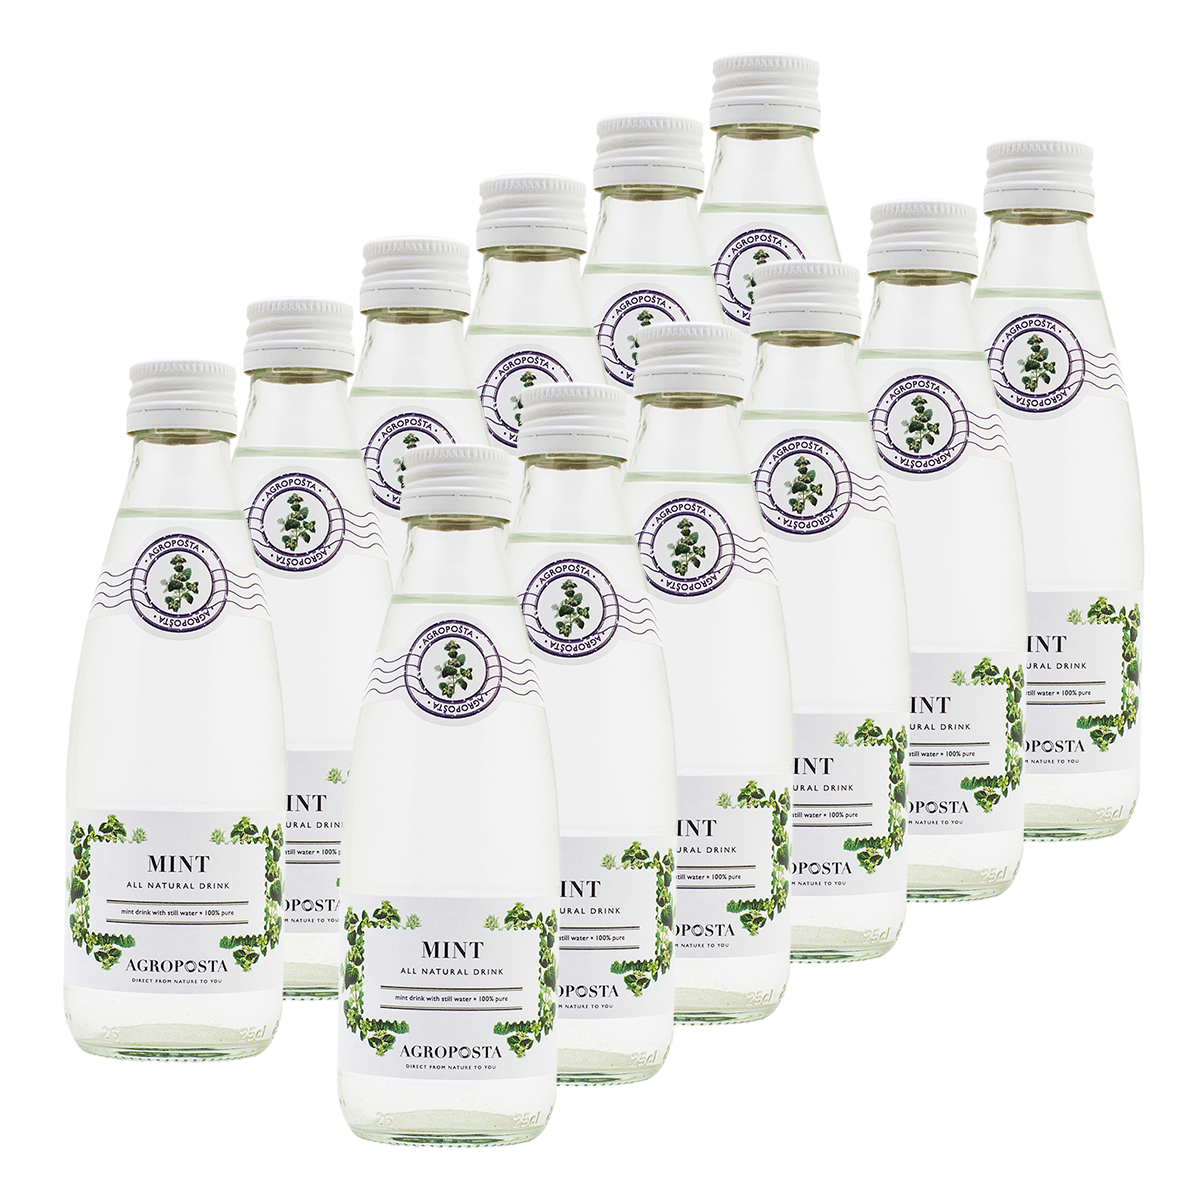 Image of AgropoÅ!ta: 100% Pure, All-Natural, Guilt-Free Drinks, Flavored Water, Mint